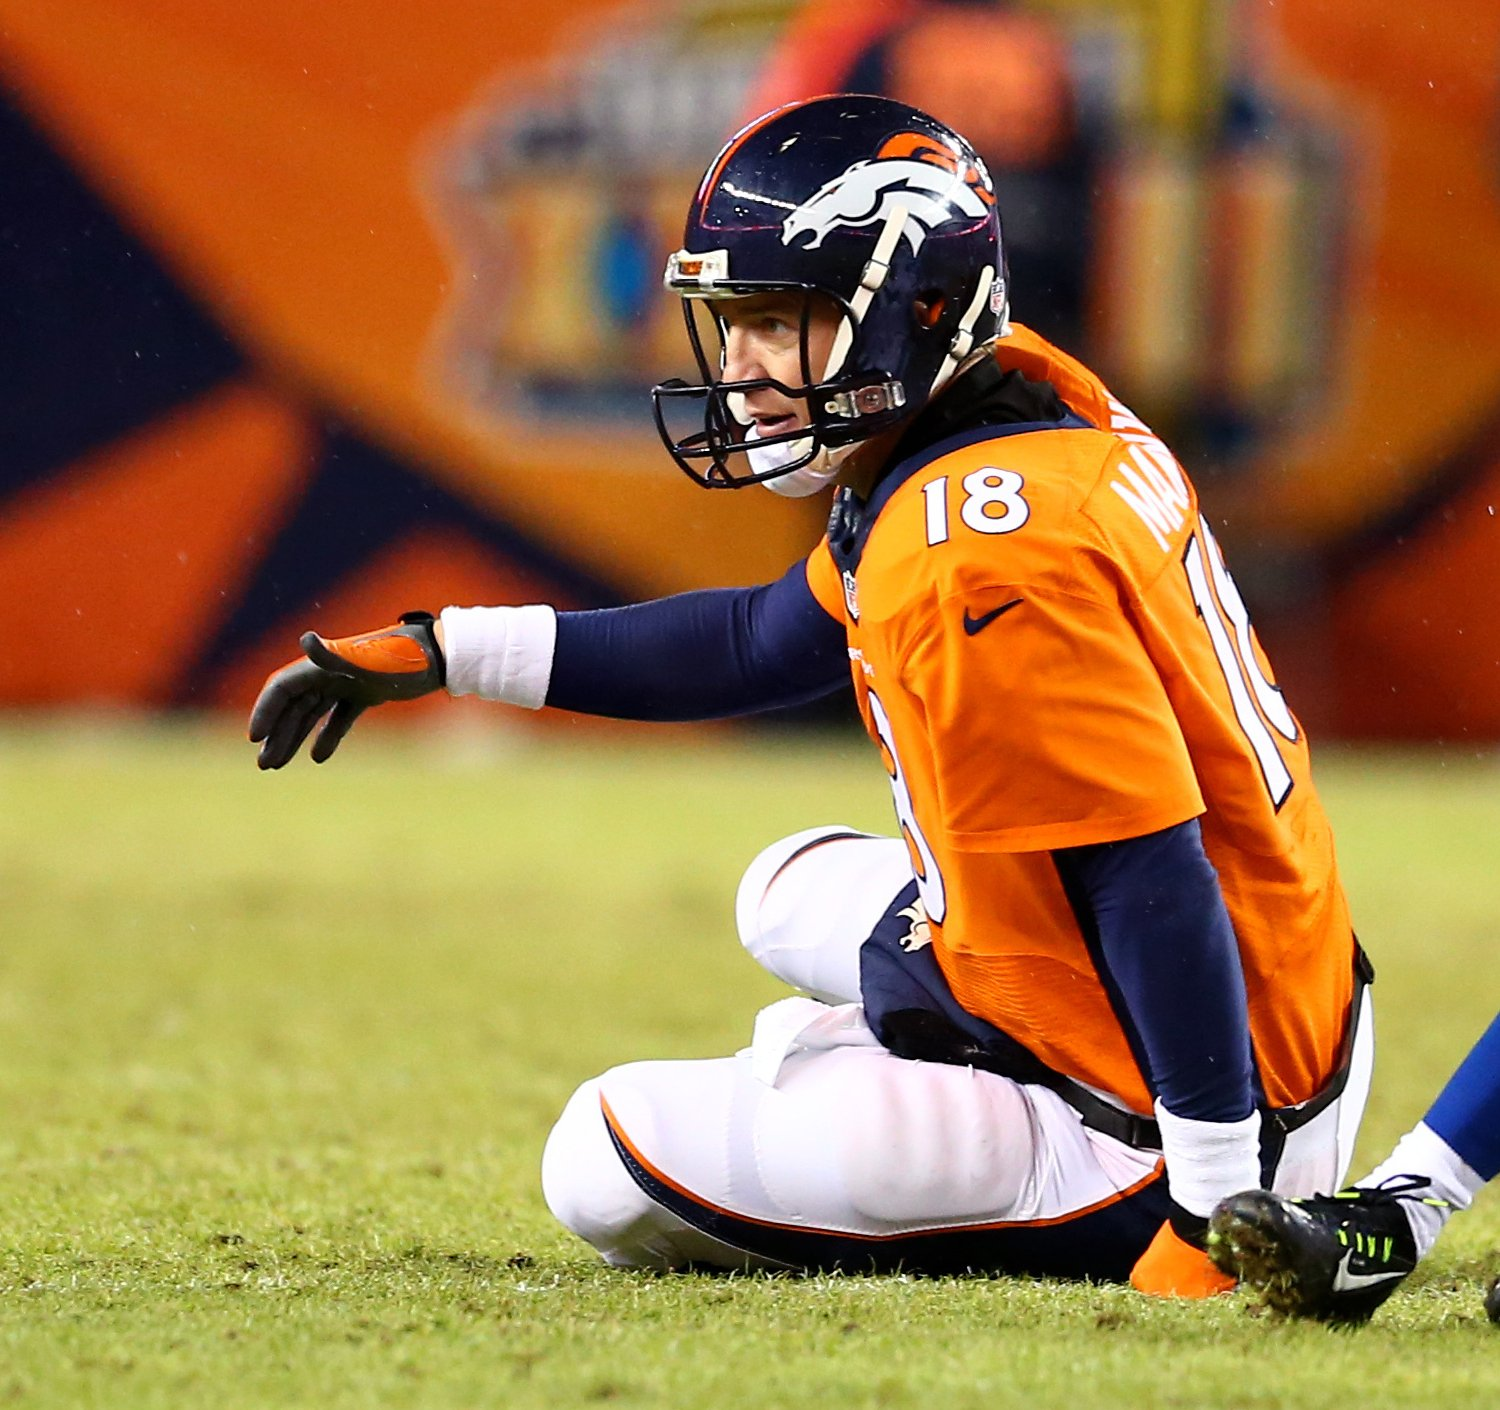 What Is John Elway Planning: Quad Injury No Excuse For Poor Play From Peyton Manning